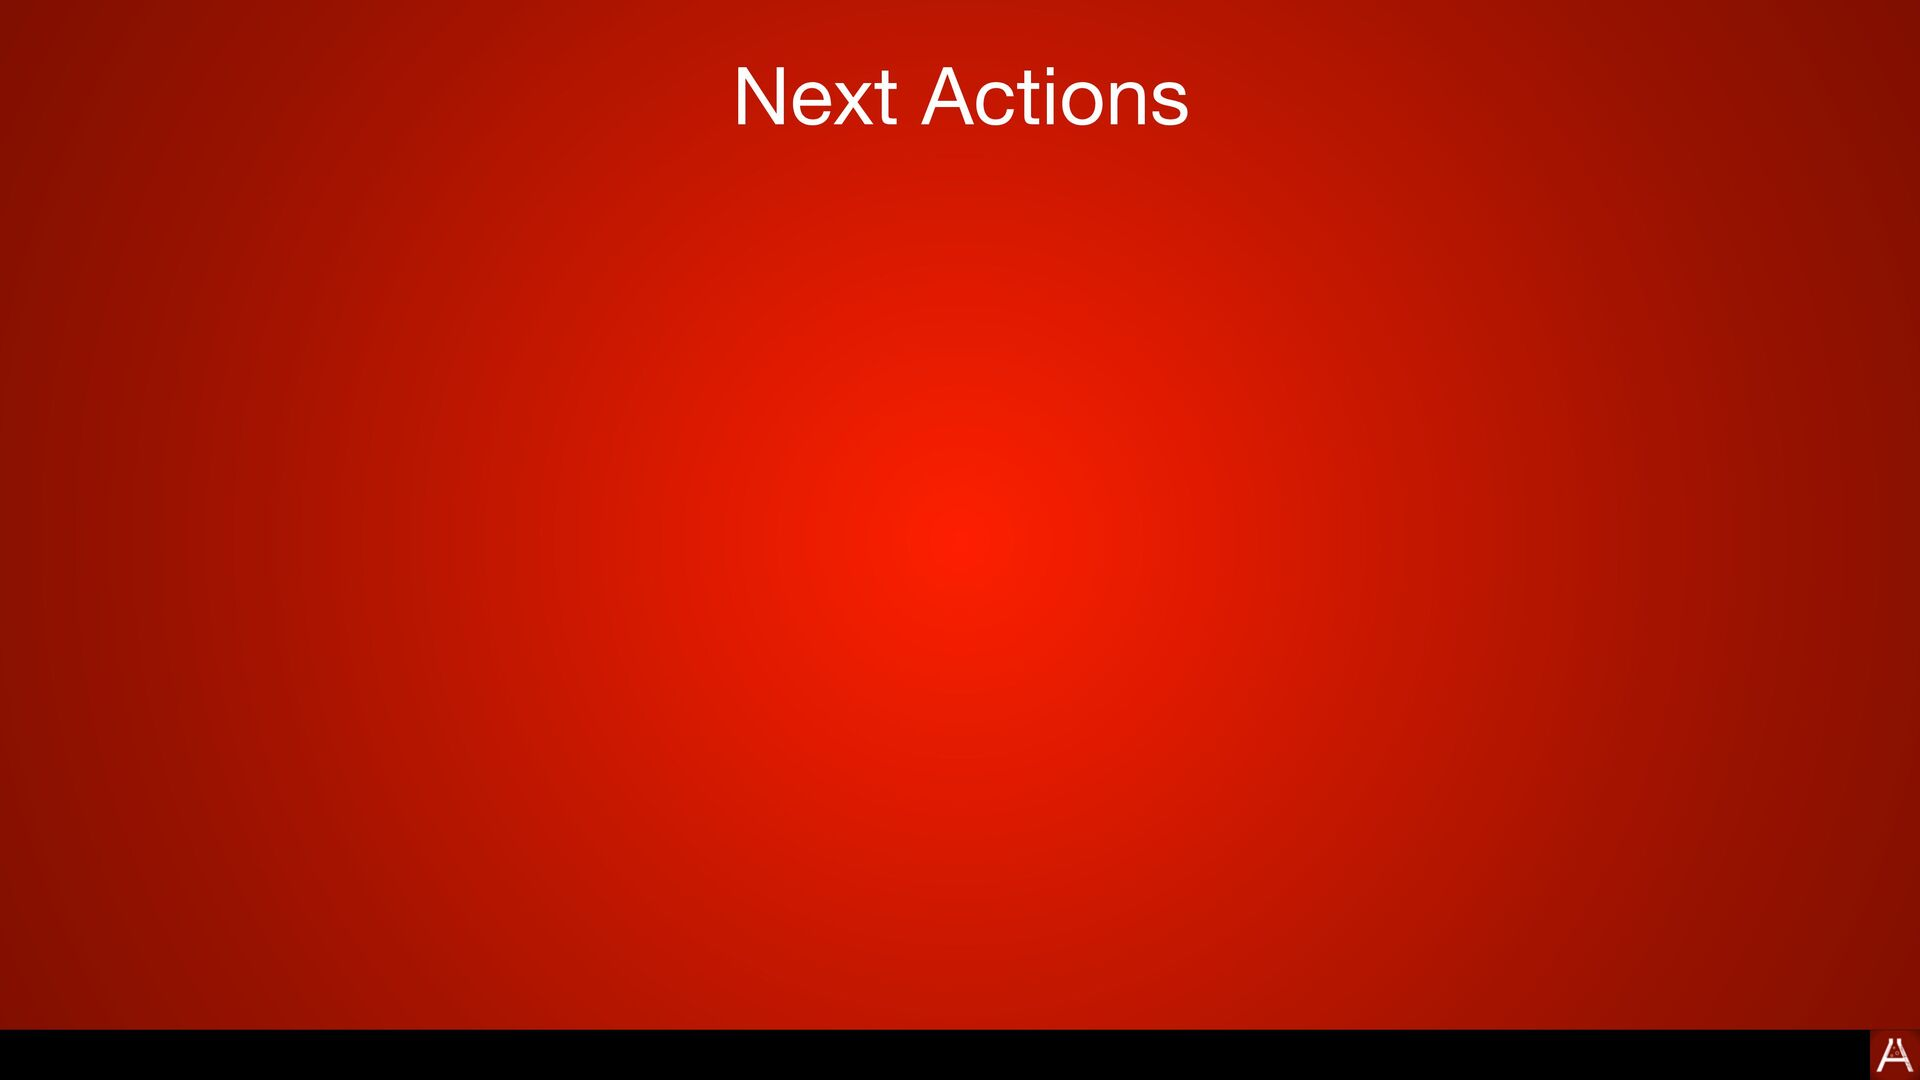 Next Actions 🔭